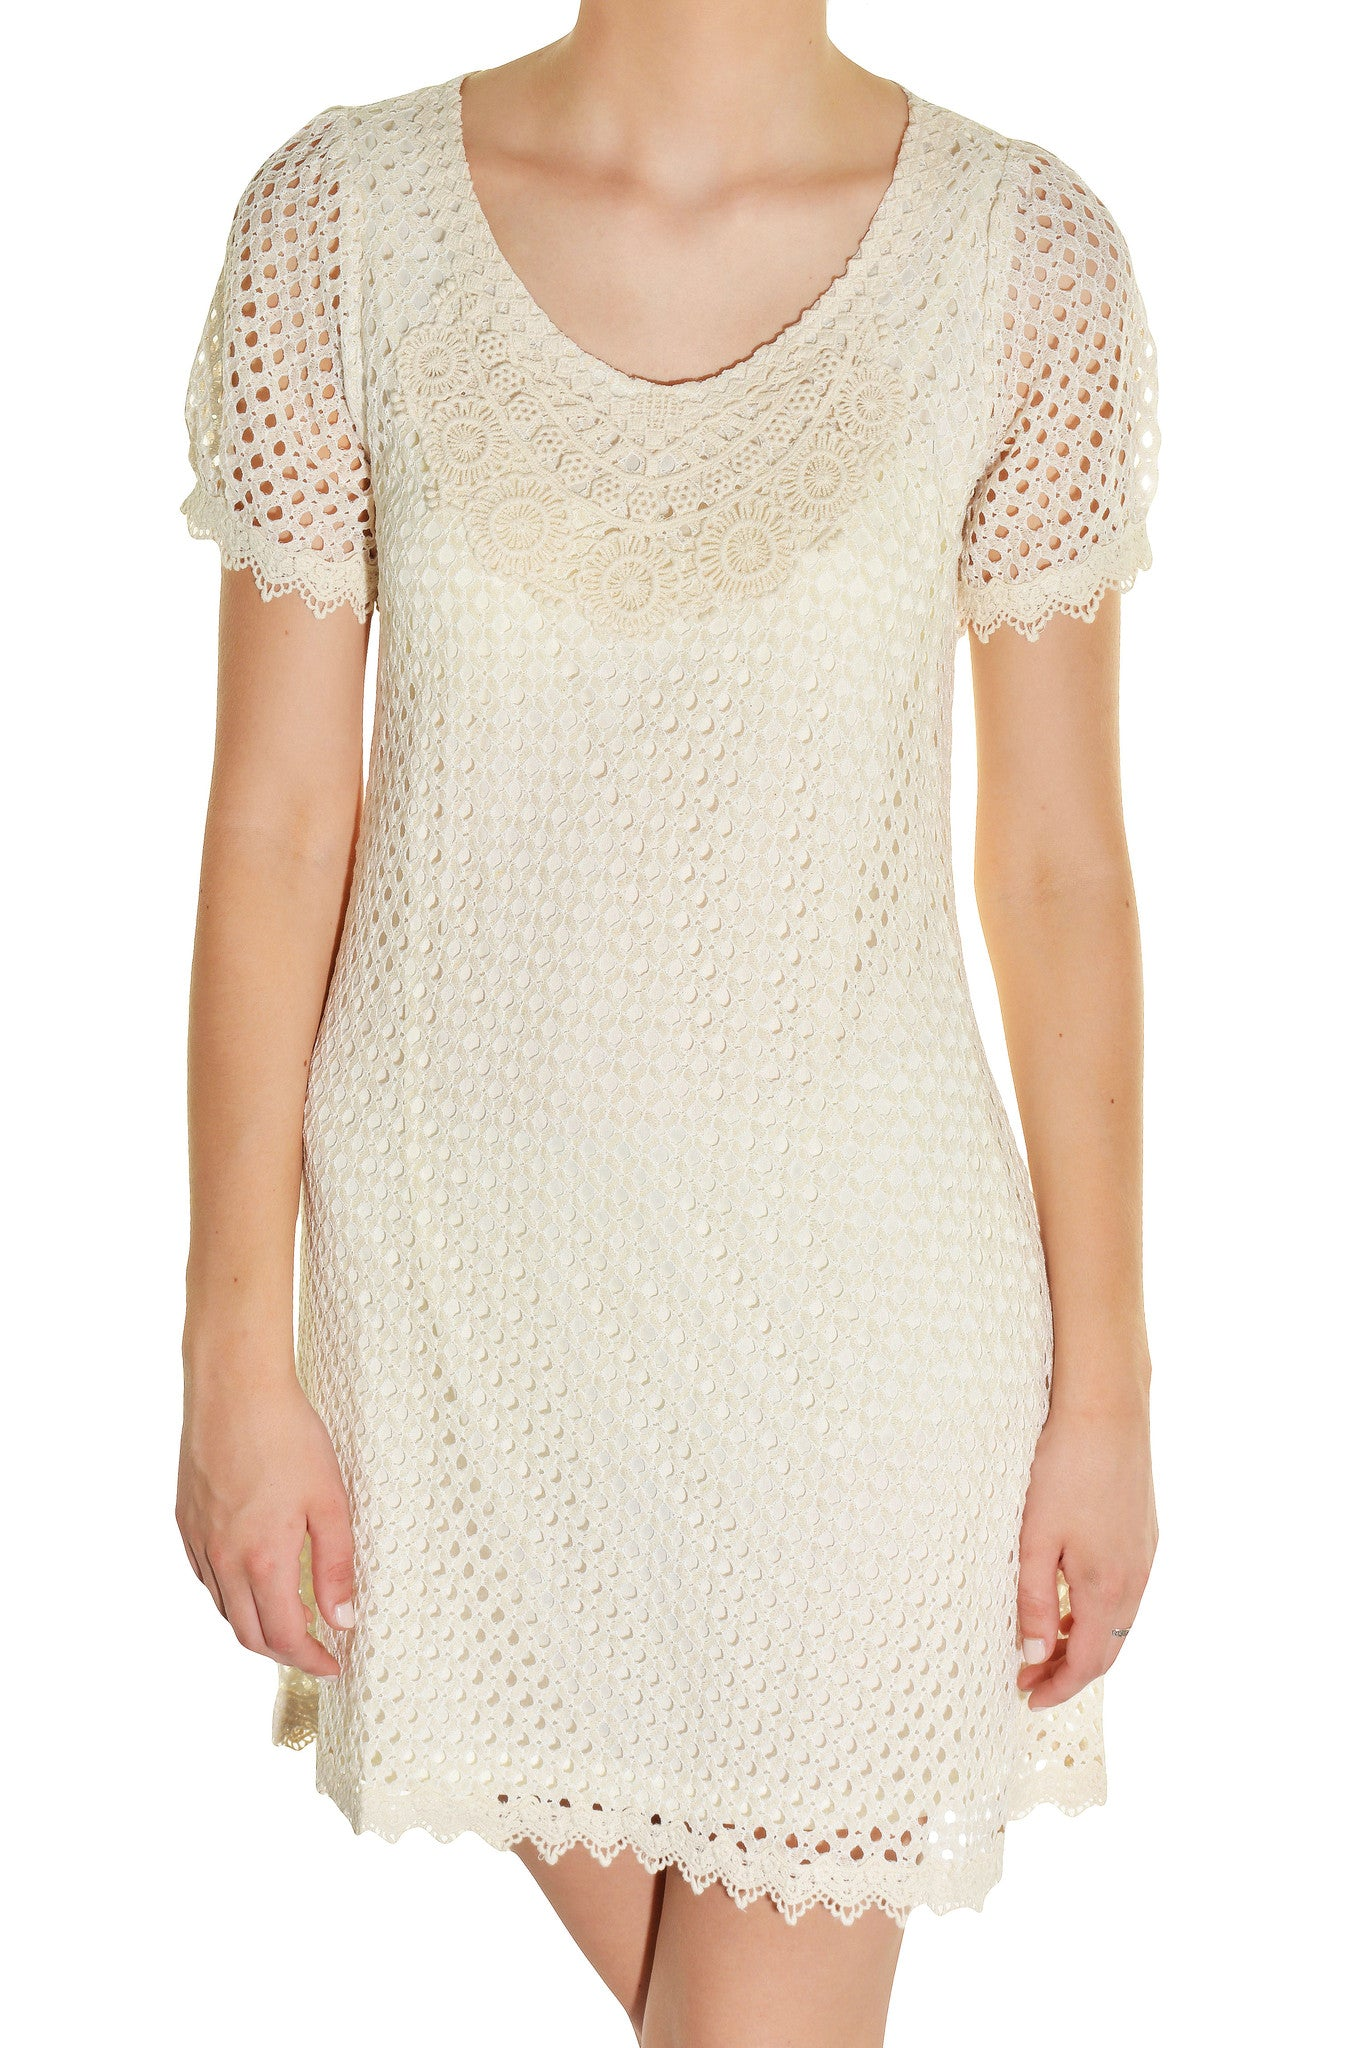 Banana USA Eyelet Micro Mod Dress (Ivory White),Dress,Banana USA - Discount Divas